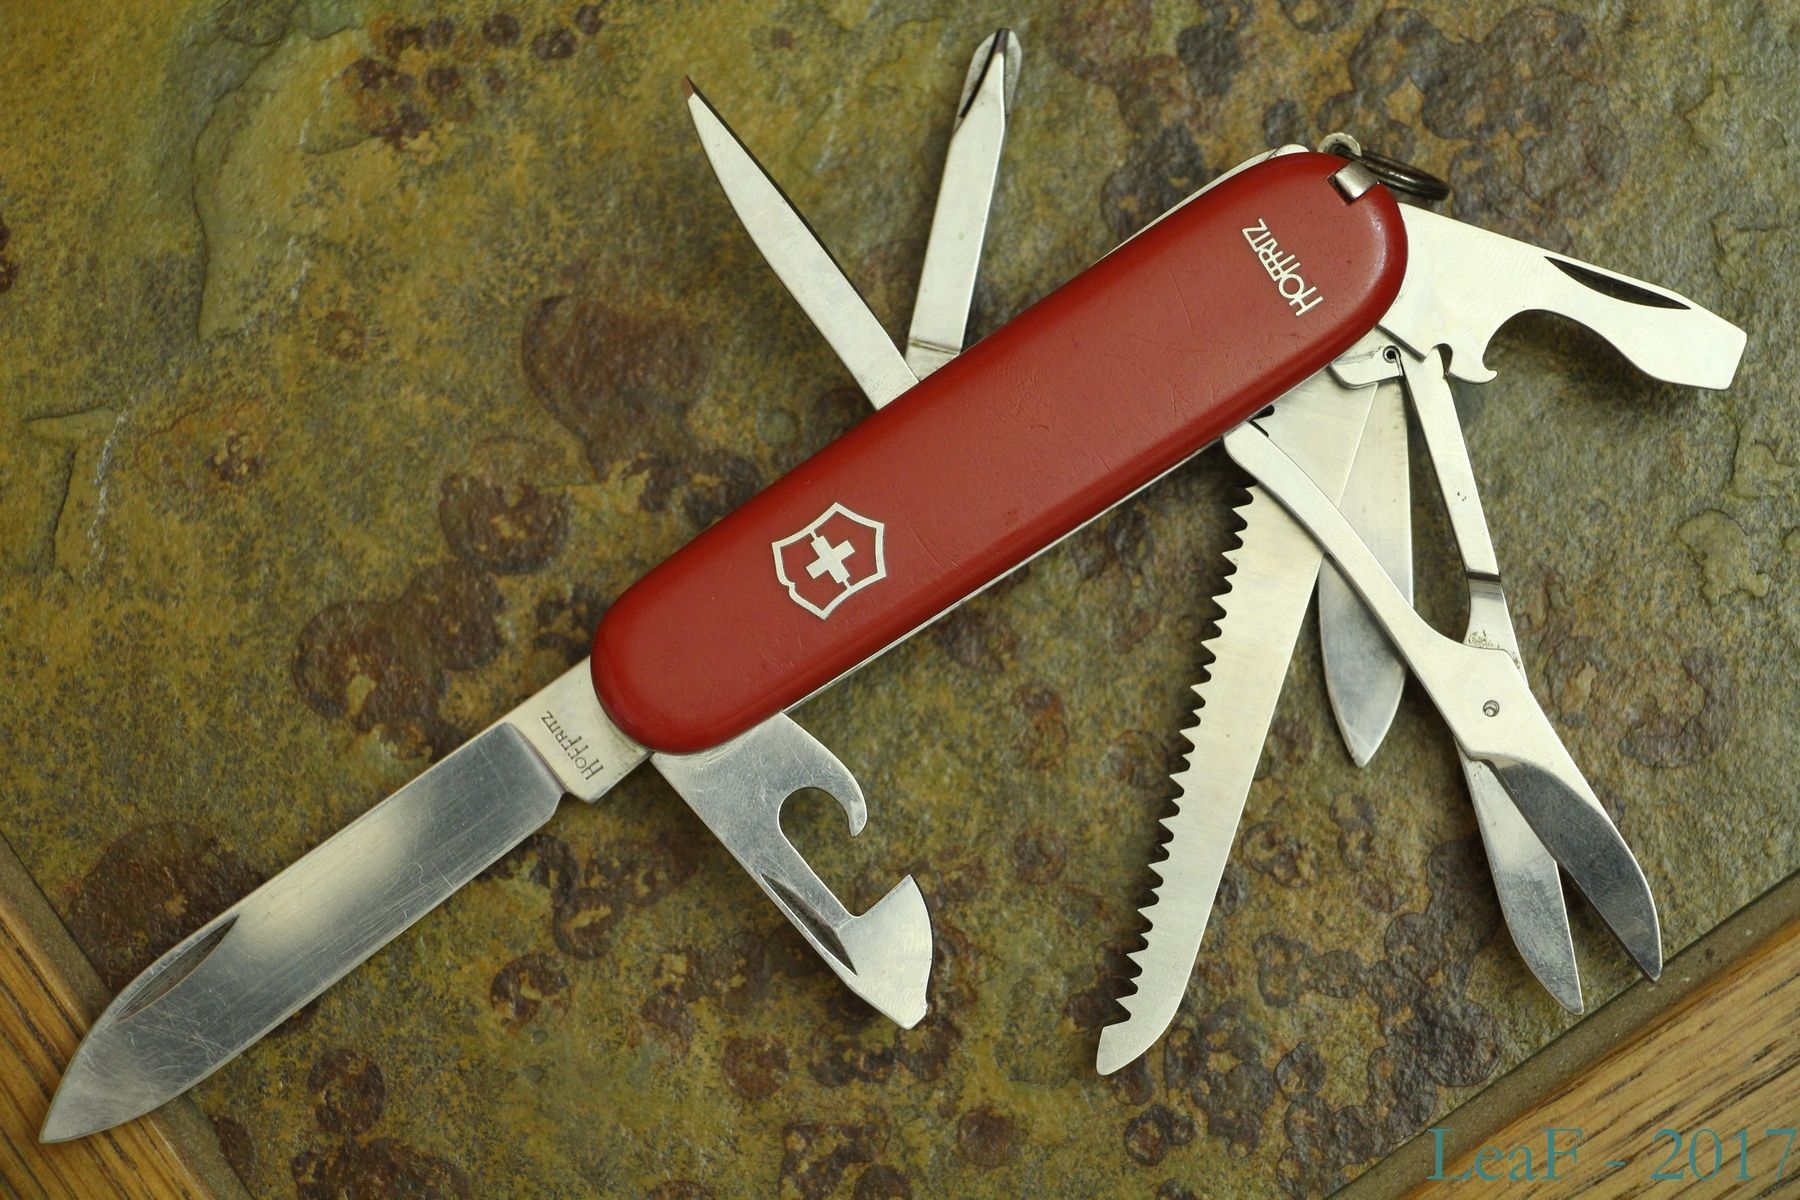 593 Fieldmaster Leaf S Victorinox Knives Collection